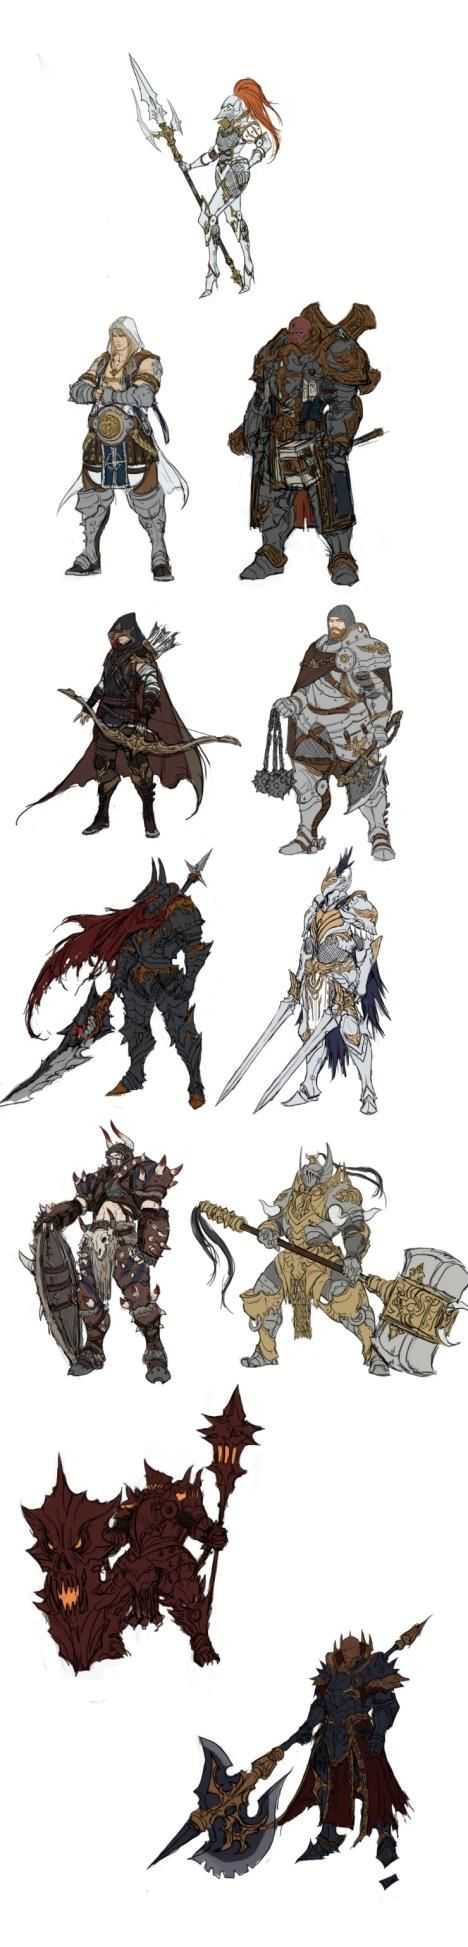 I'm going to assume that the single woman character is the one wearing heels on her armor. for... some reason